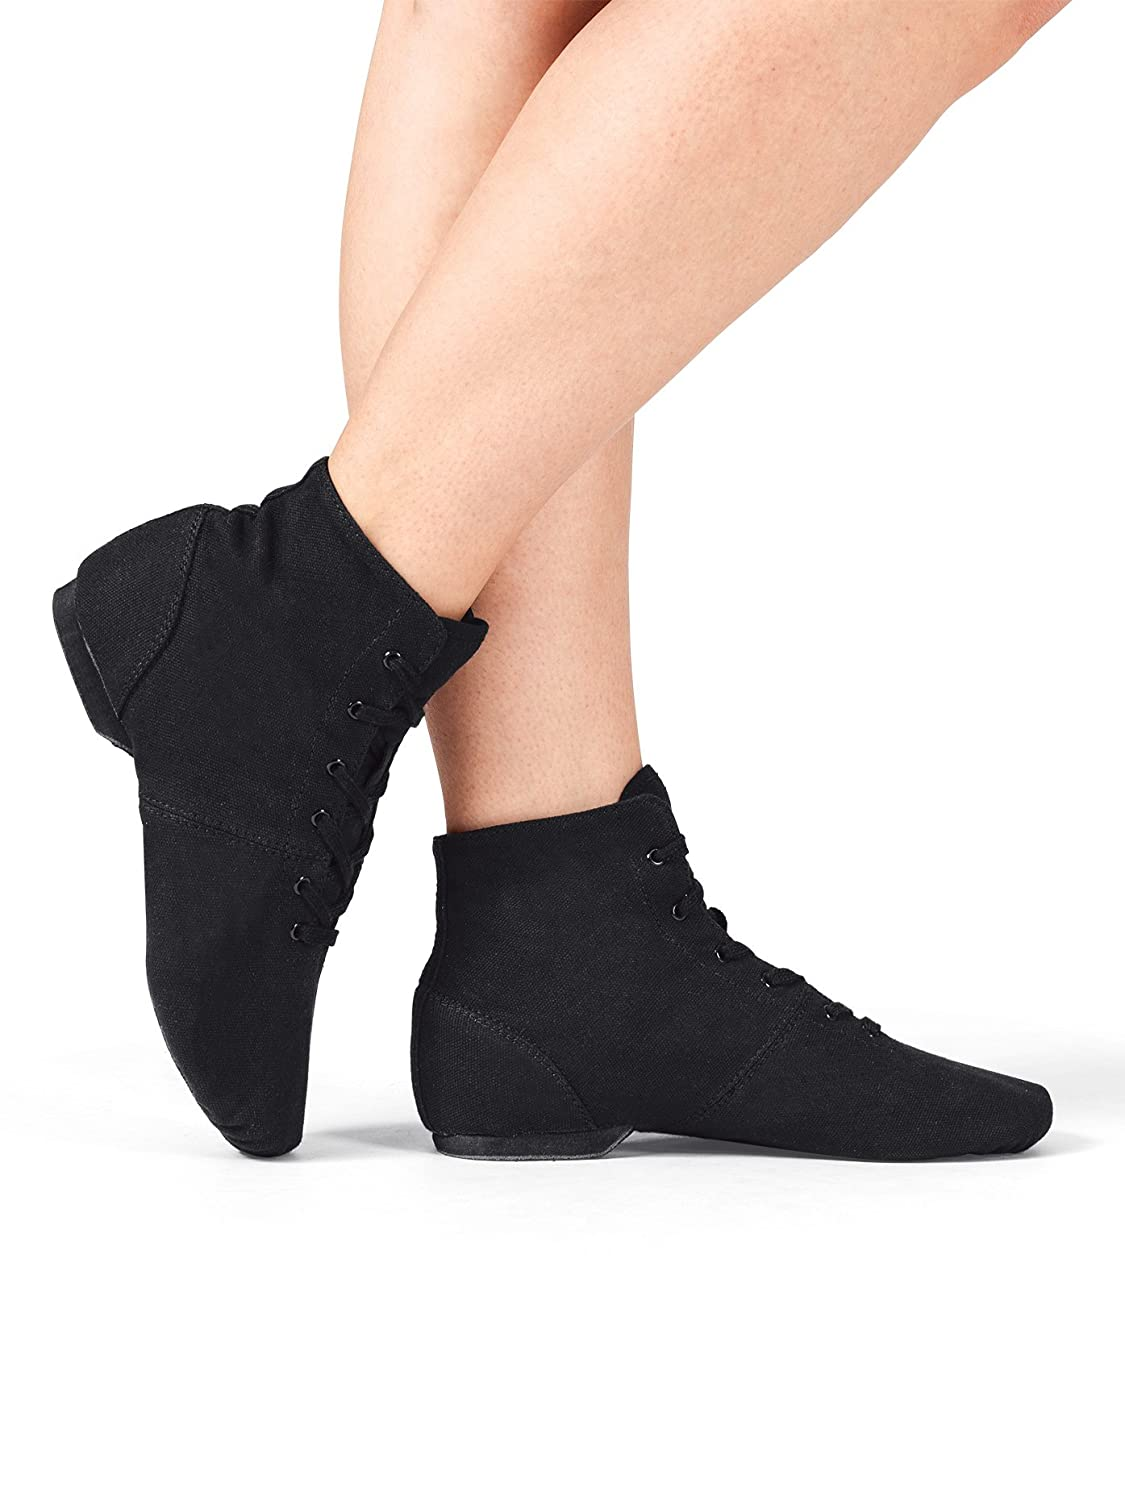 Vintage Boots- Buy Winter Retro Boots Adult Broadway Jazz Over-the-Ankle Canvas Jazz BootT7502 $78.26 AT vintagedancer.com